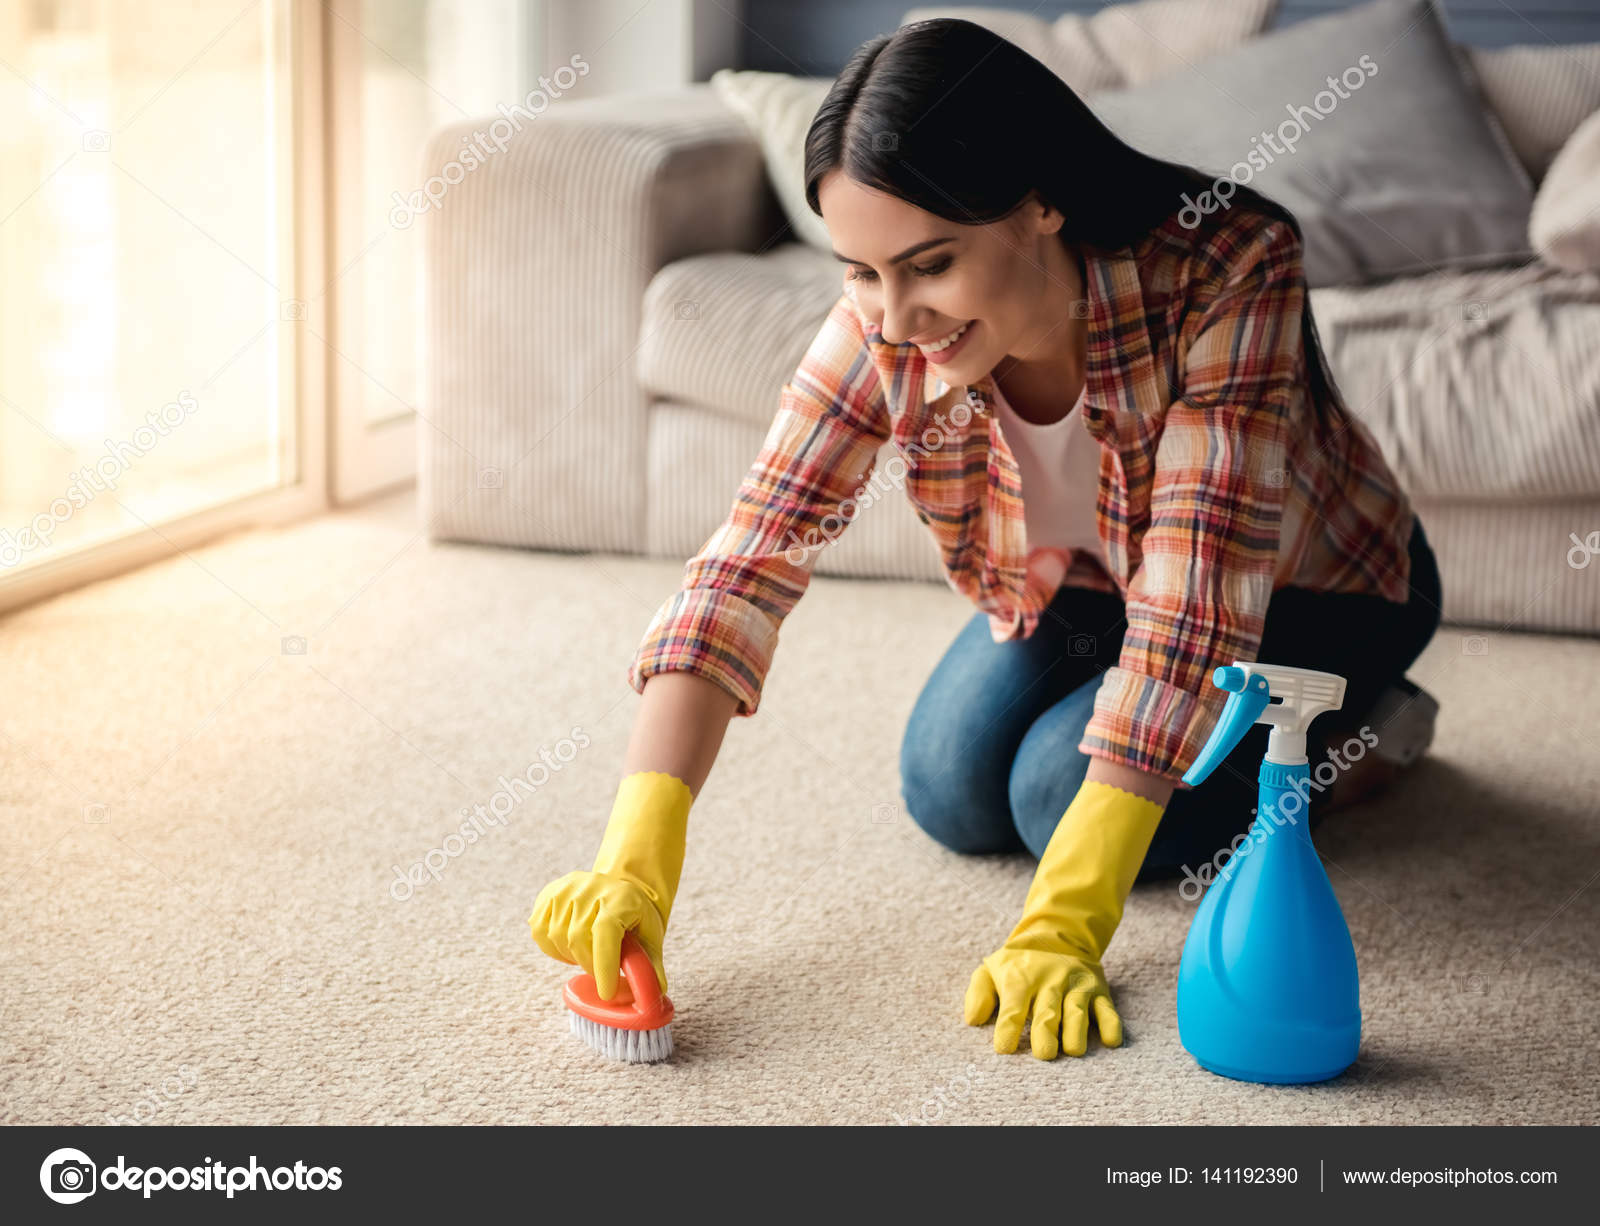 Rather Young girl cleaning house assure you